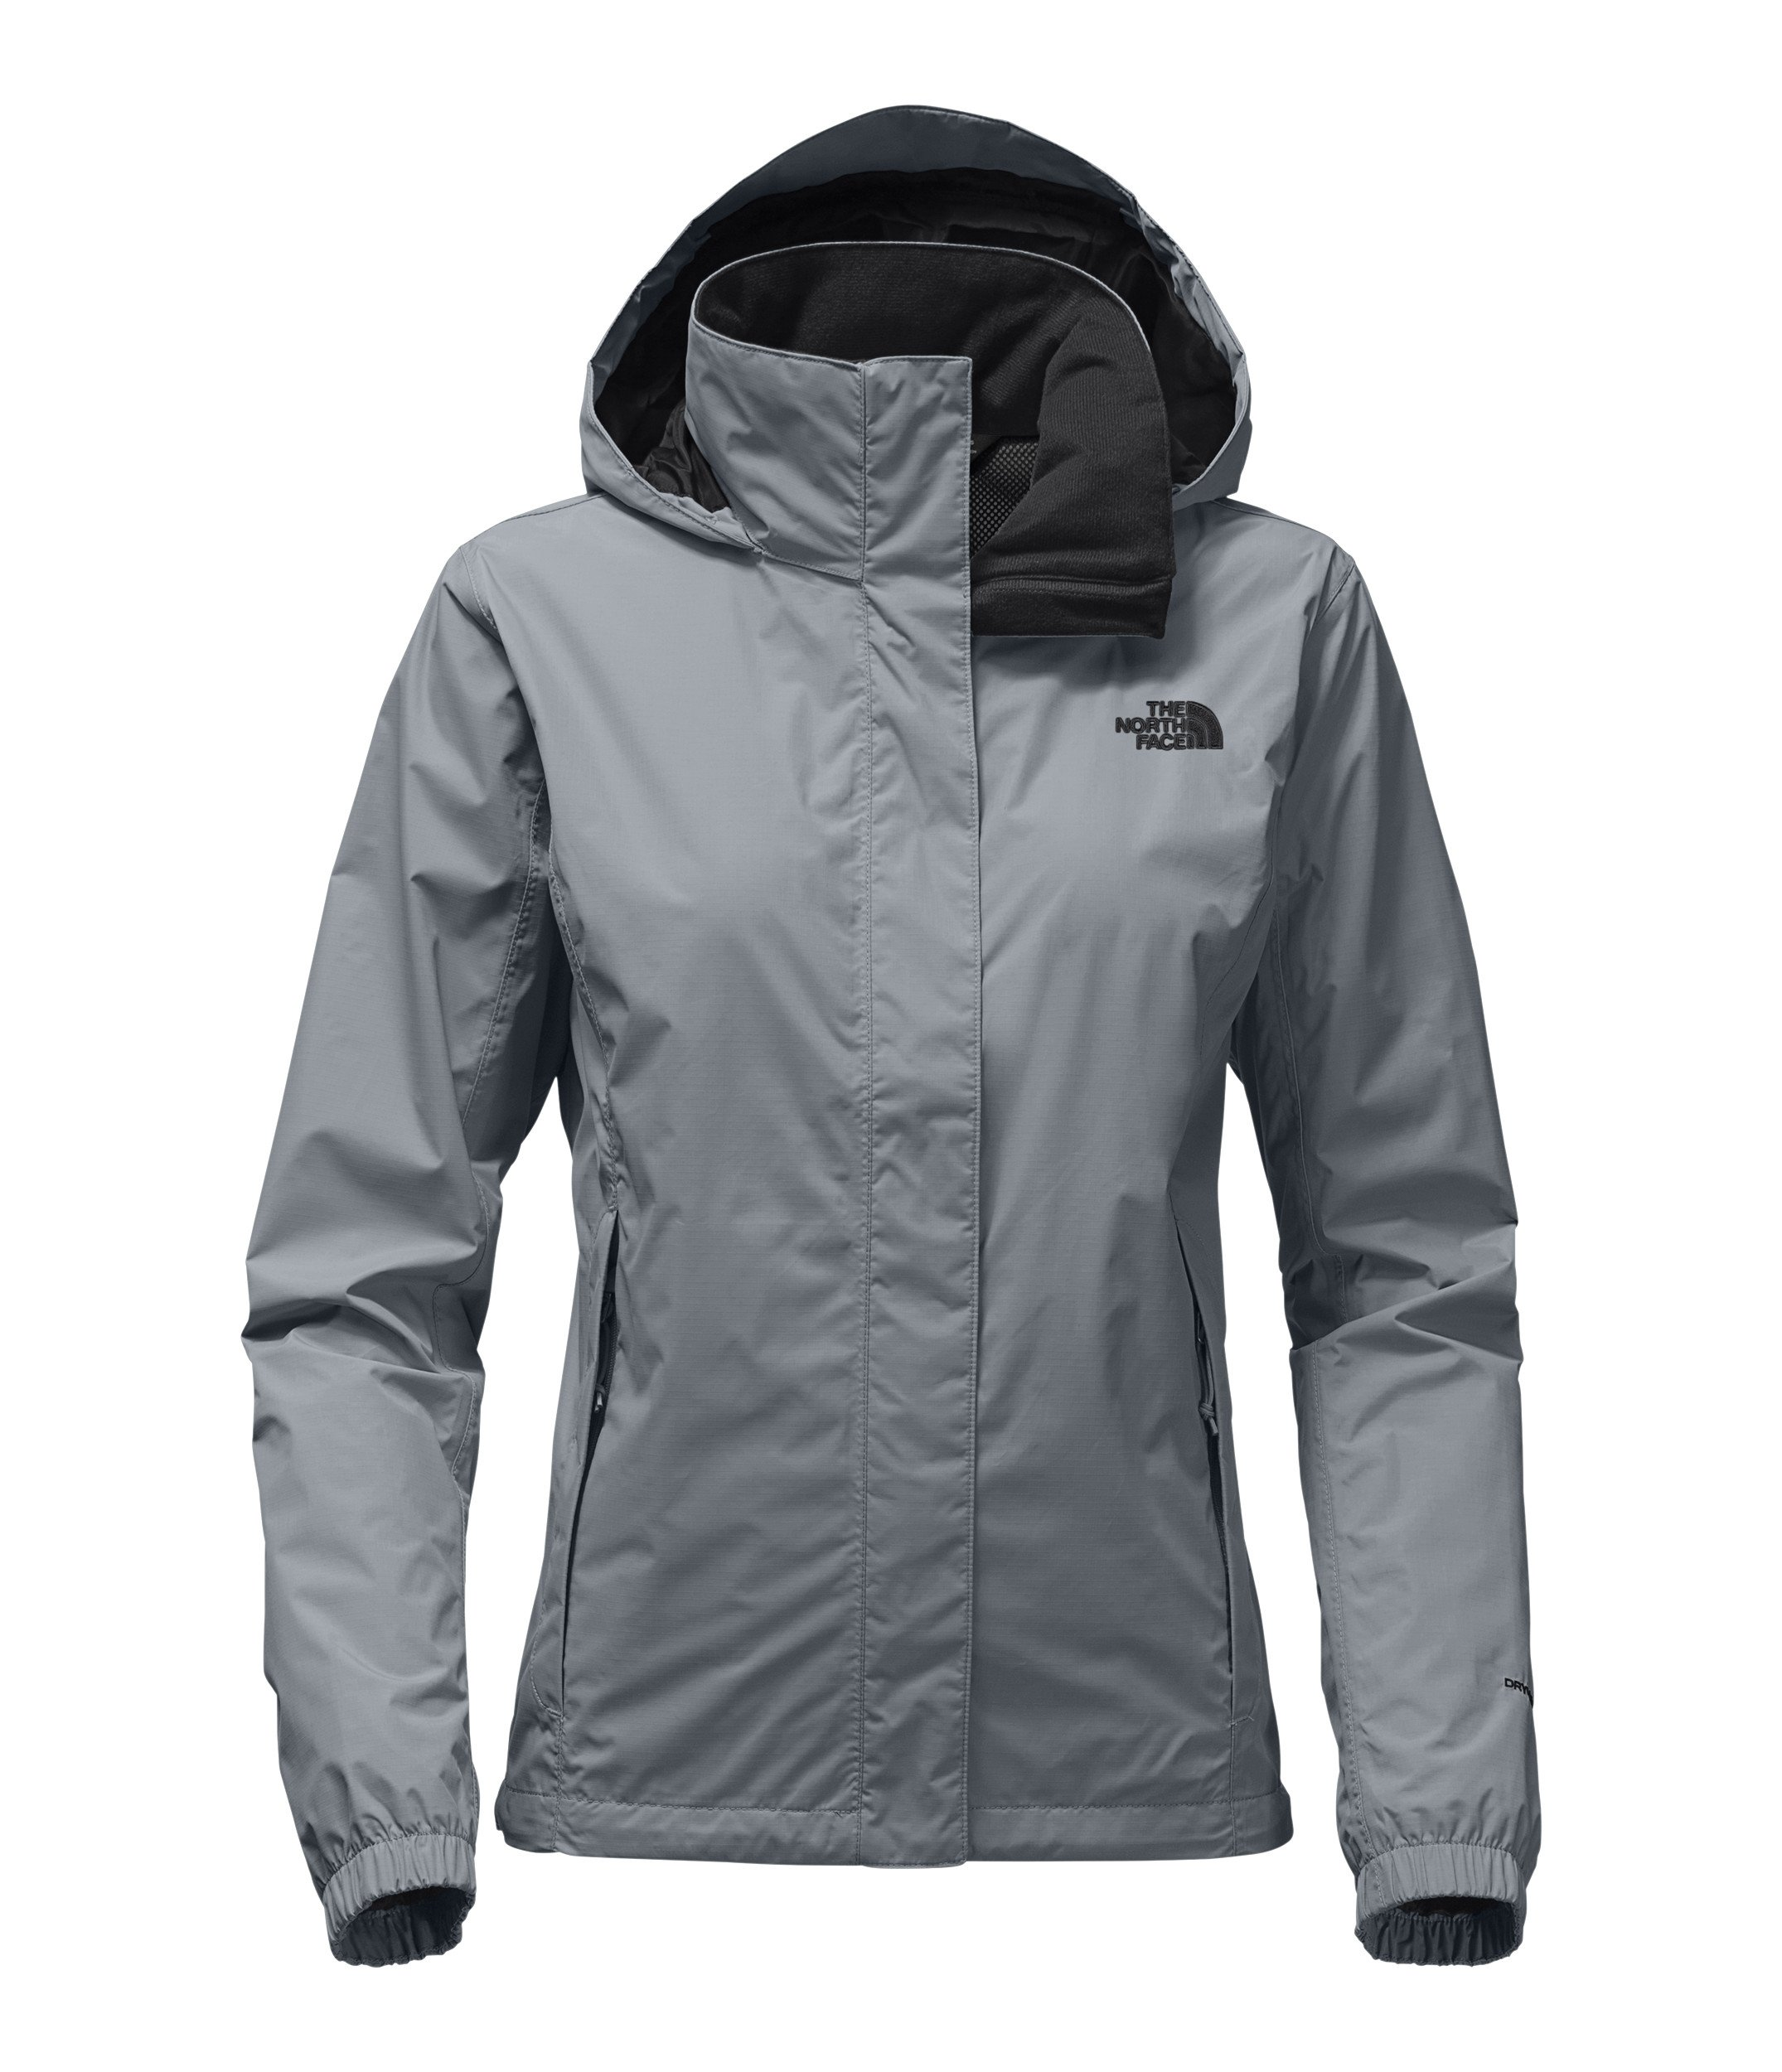 The North Face Women Resolve 2 Jacket - Mid Grey & TNF Black - M by The North Face (Image #1)